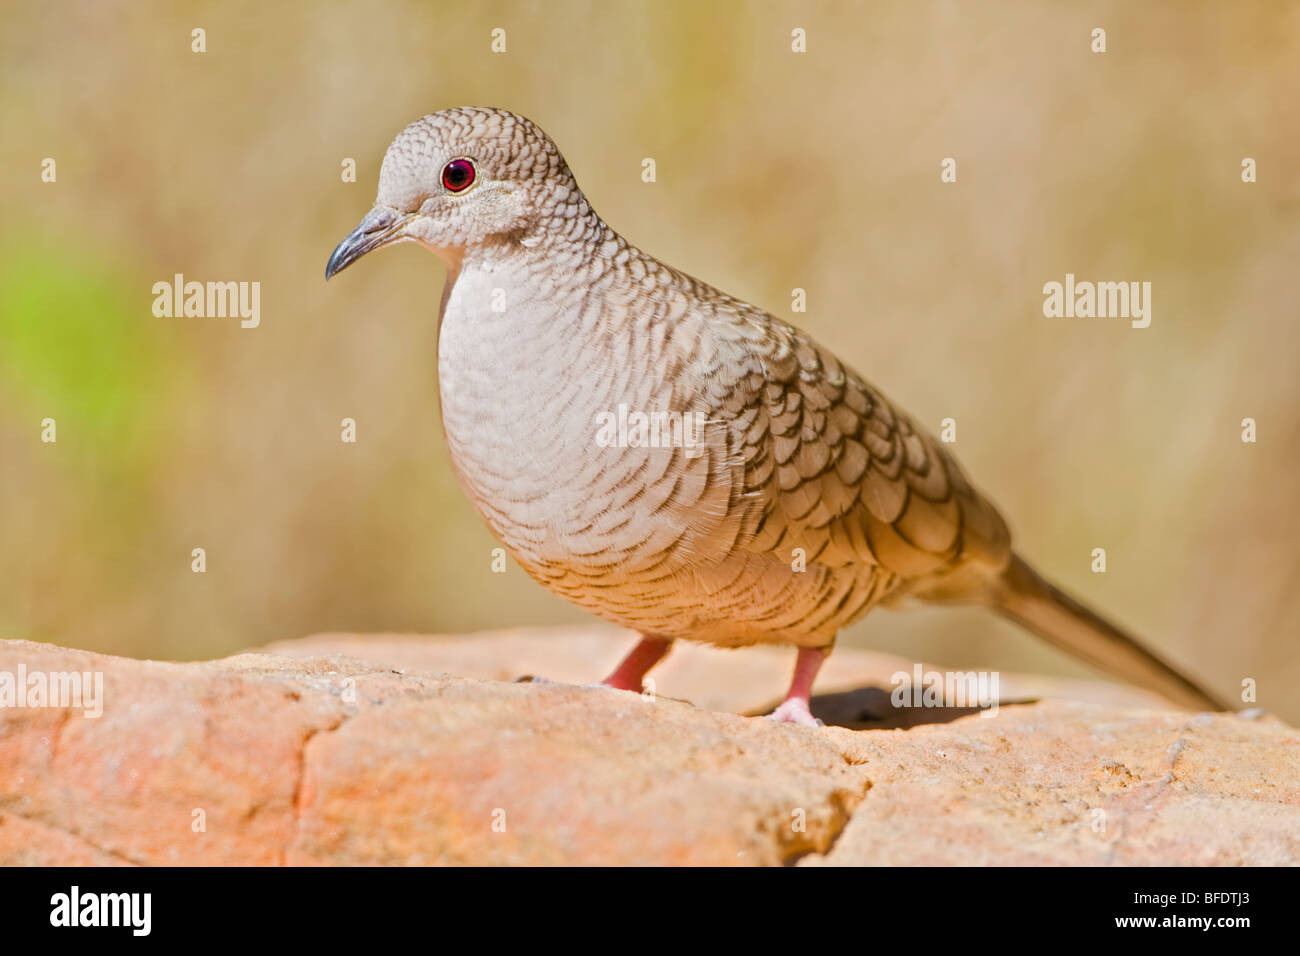 Inca Dove (Scardafella inca) perched on a red rock in the Rio Grande Valley of Texas, USA - Stock Image